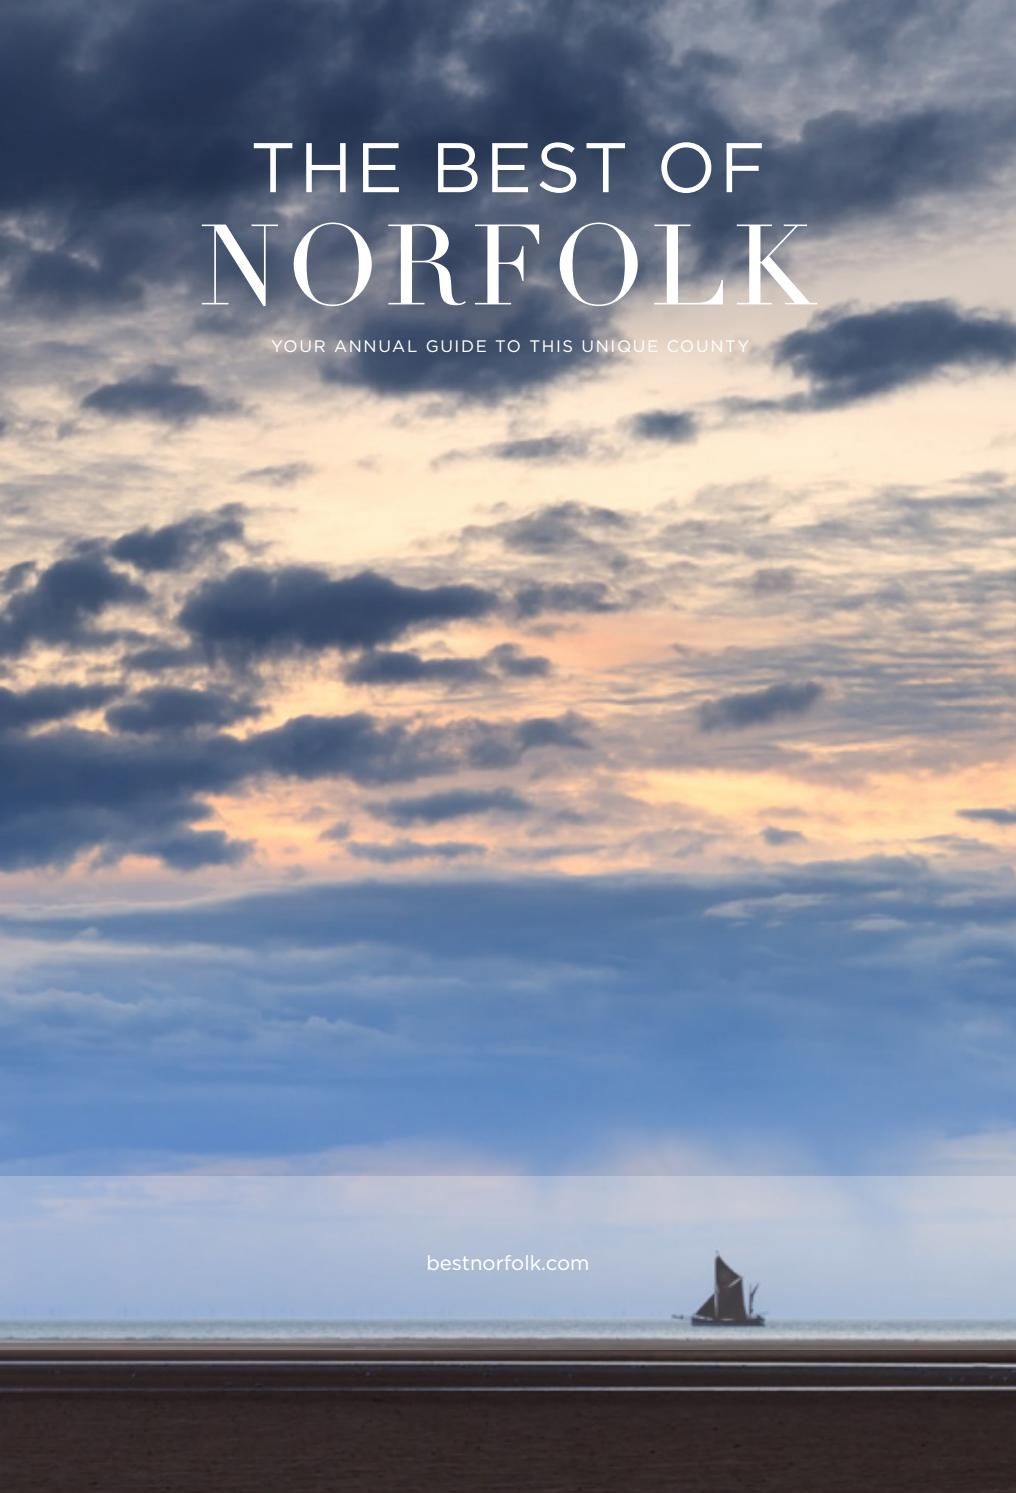 fe760c5ce08 Best of Norfolk 2018 I an annual curated guide to the best of the county by  Tilston Phillips - issuu